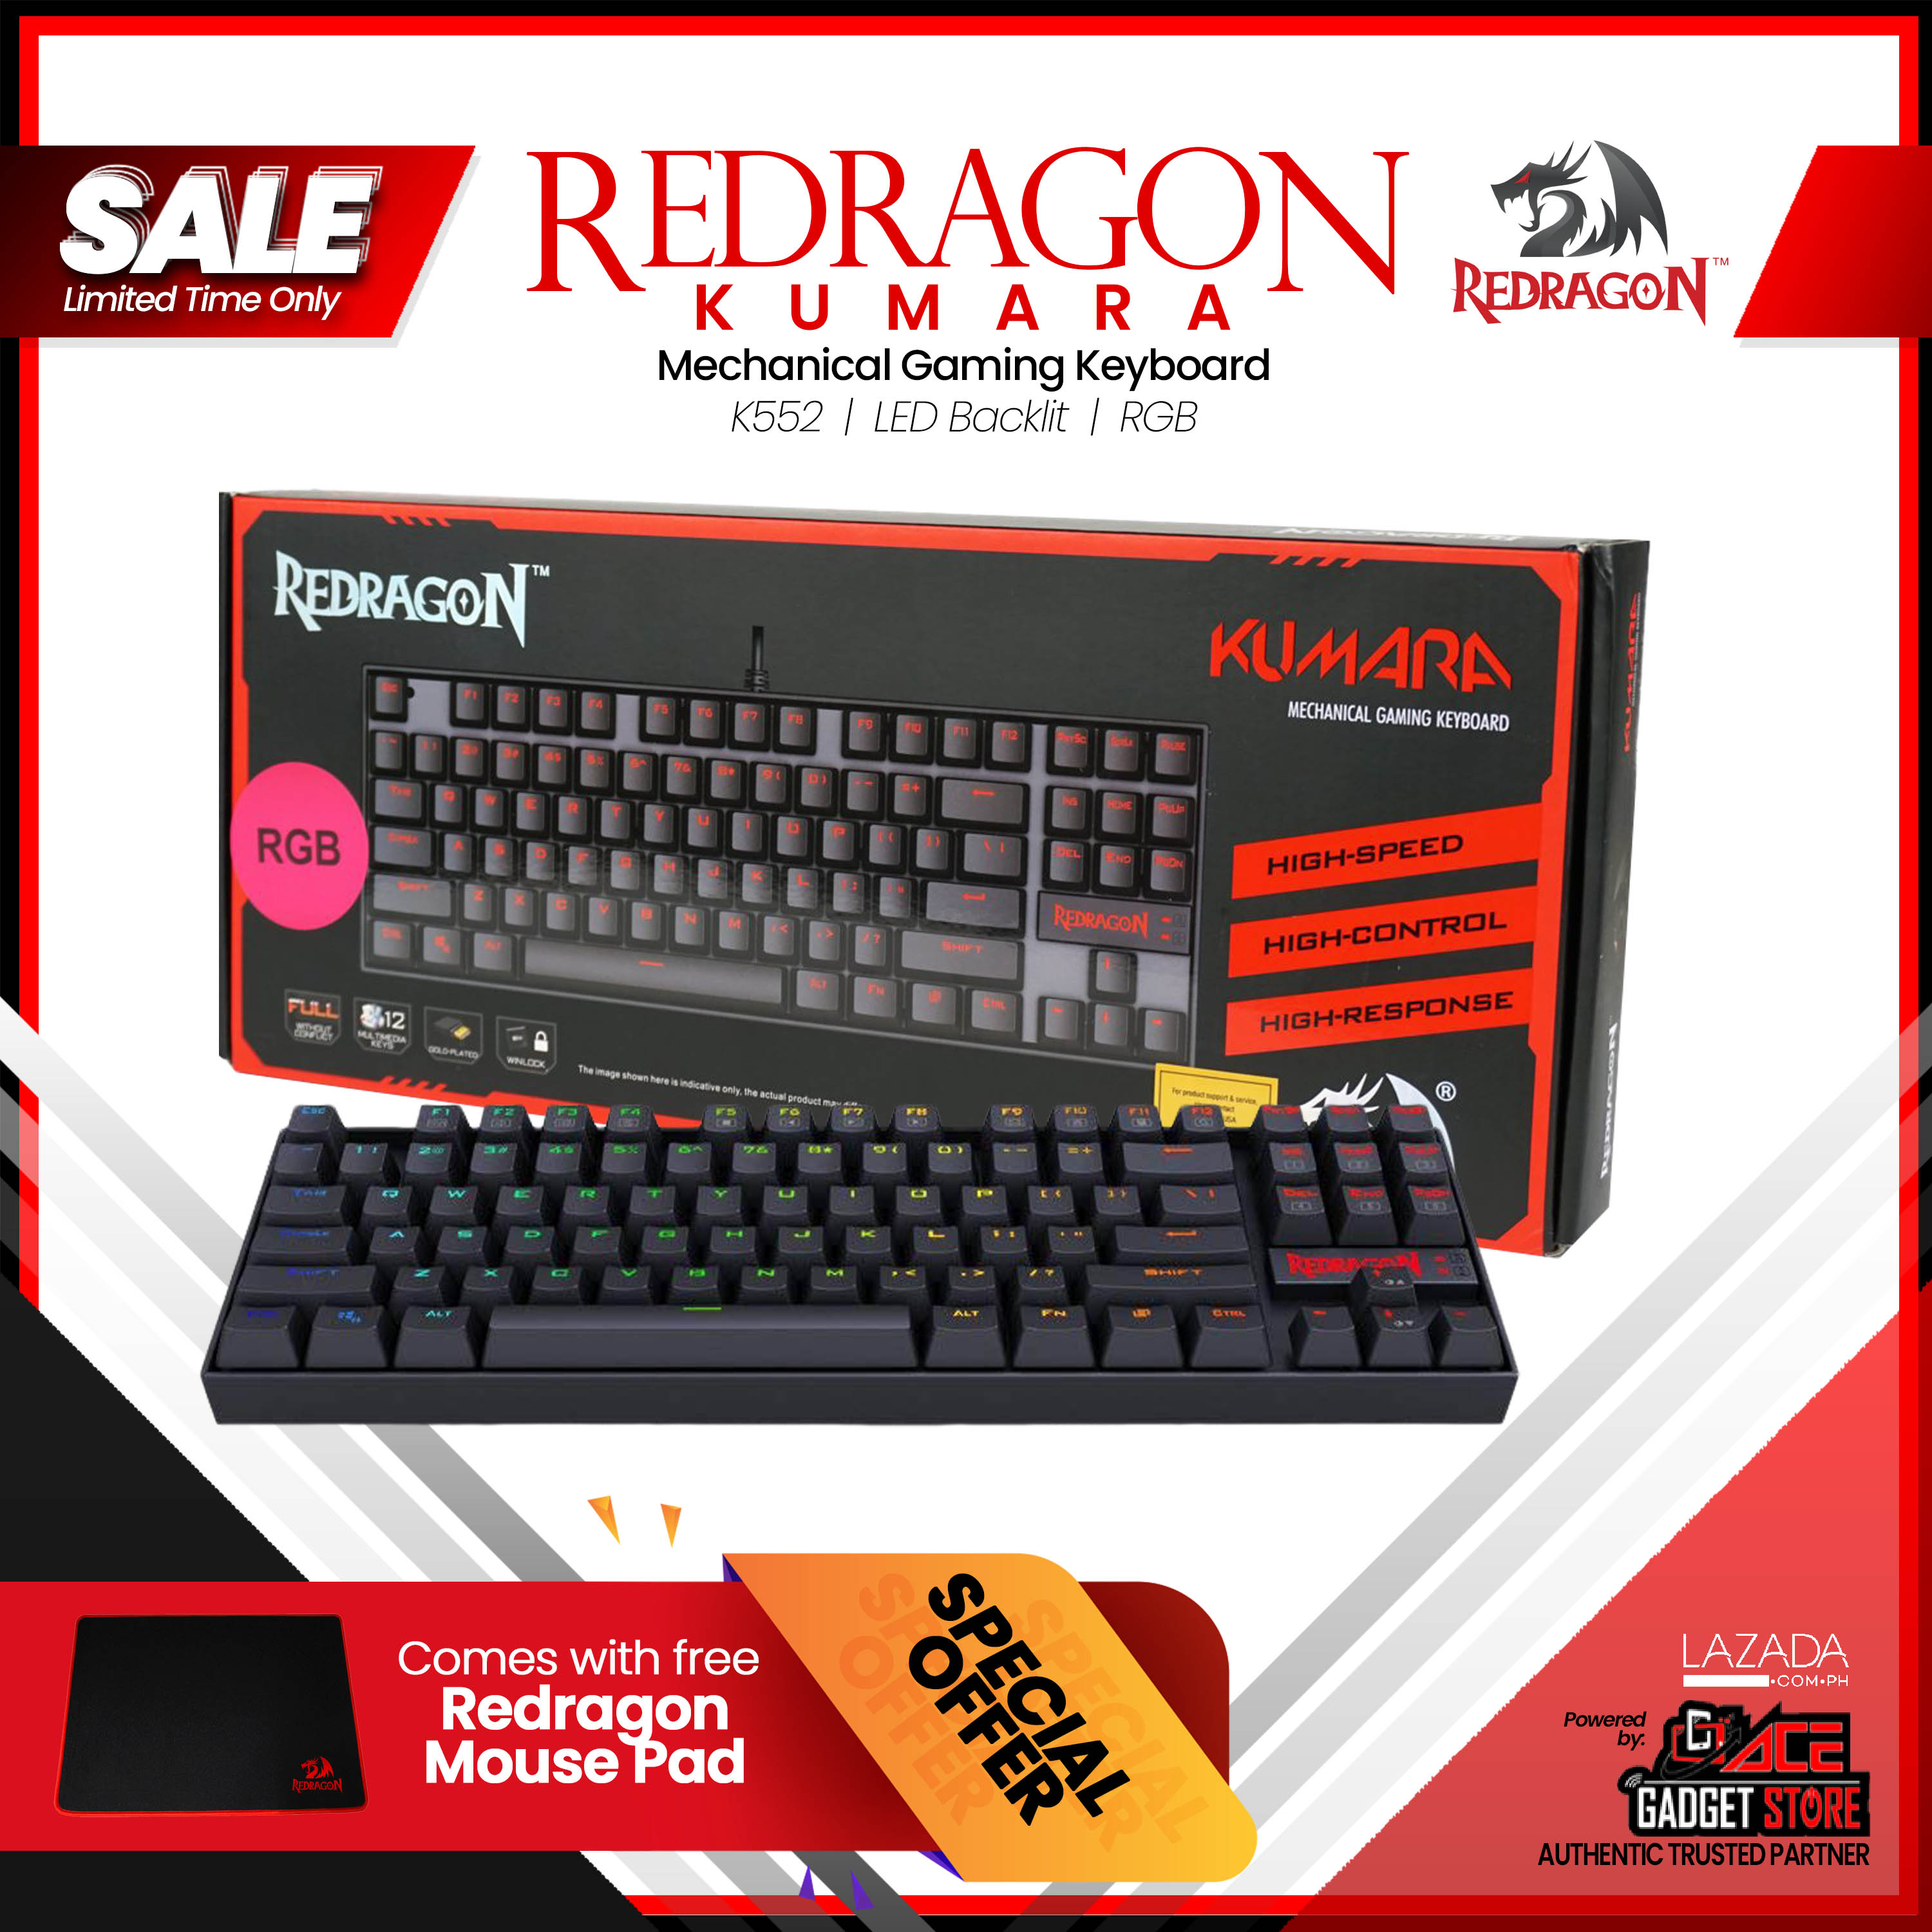 9a1cd3fb02d Redragon K552 KUMARA RGB LED Backlit Mechanical Gaming Keyboard Compact  87-keys Space Saving Design, frees up workspace on your desk without  sacrificing ...